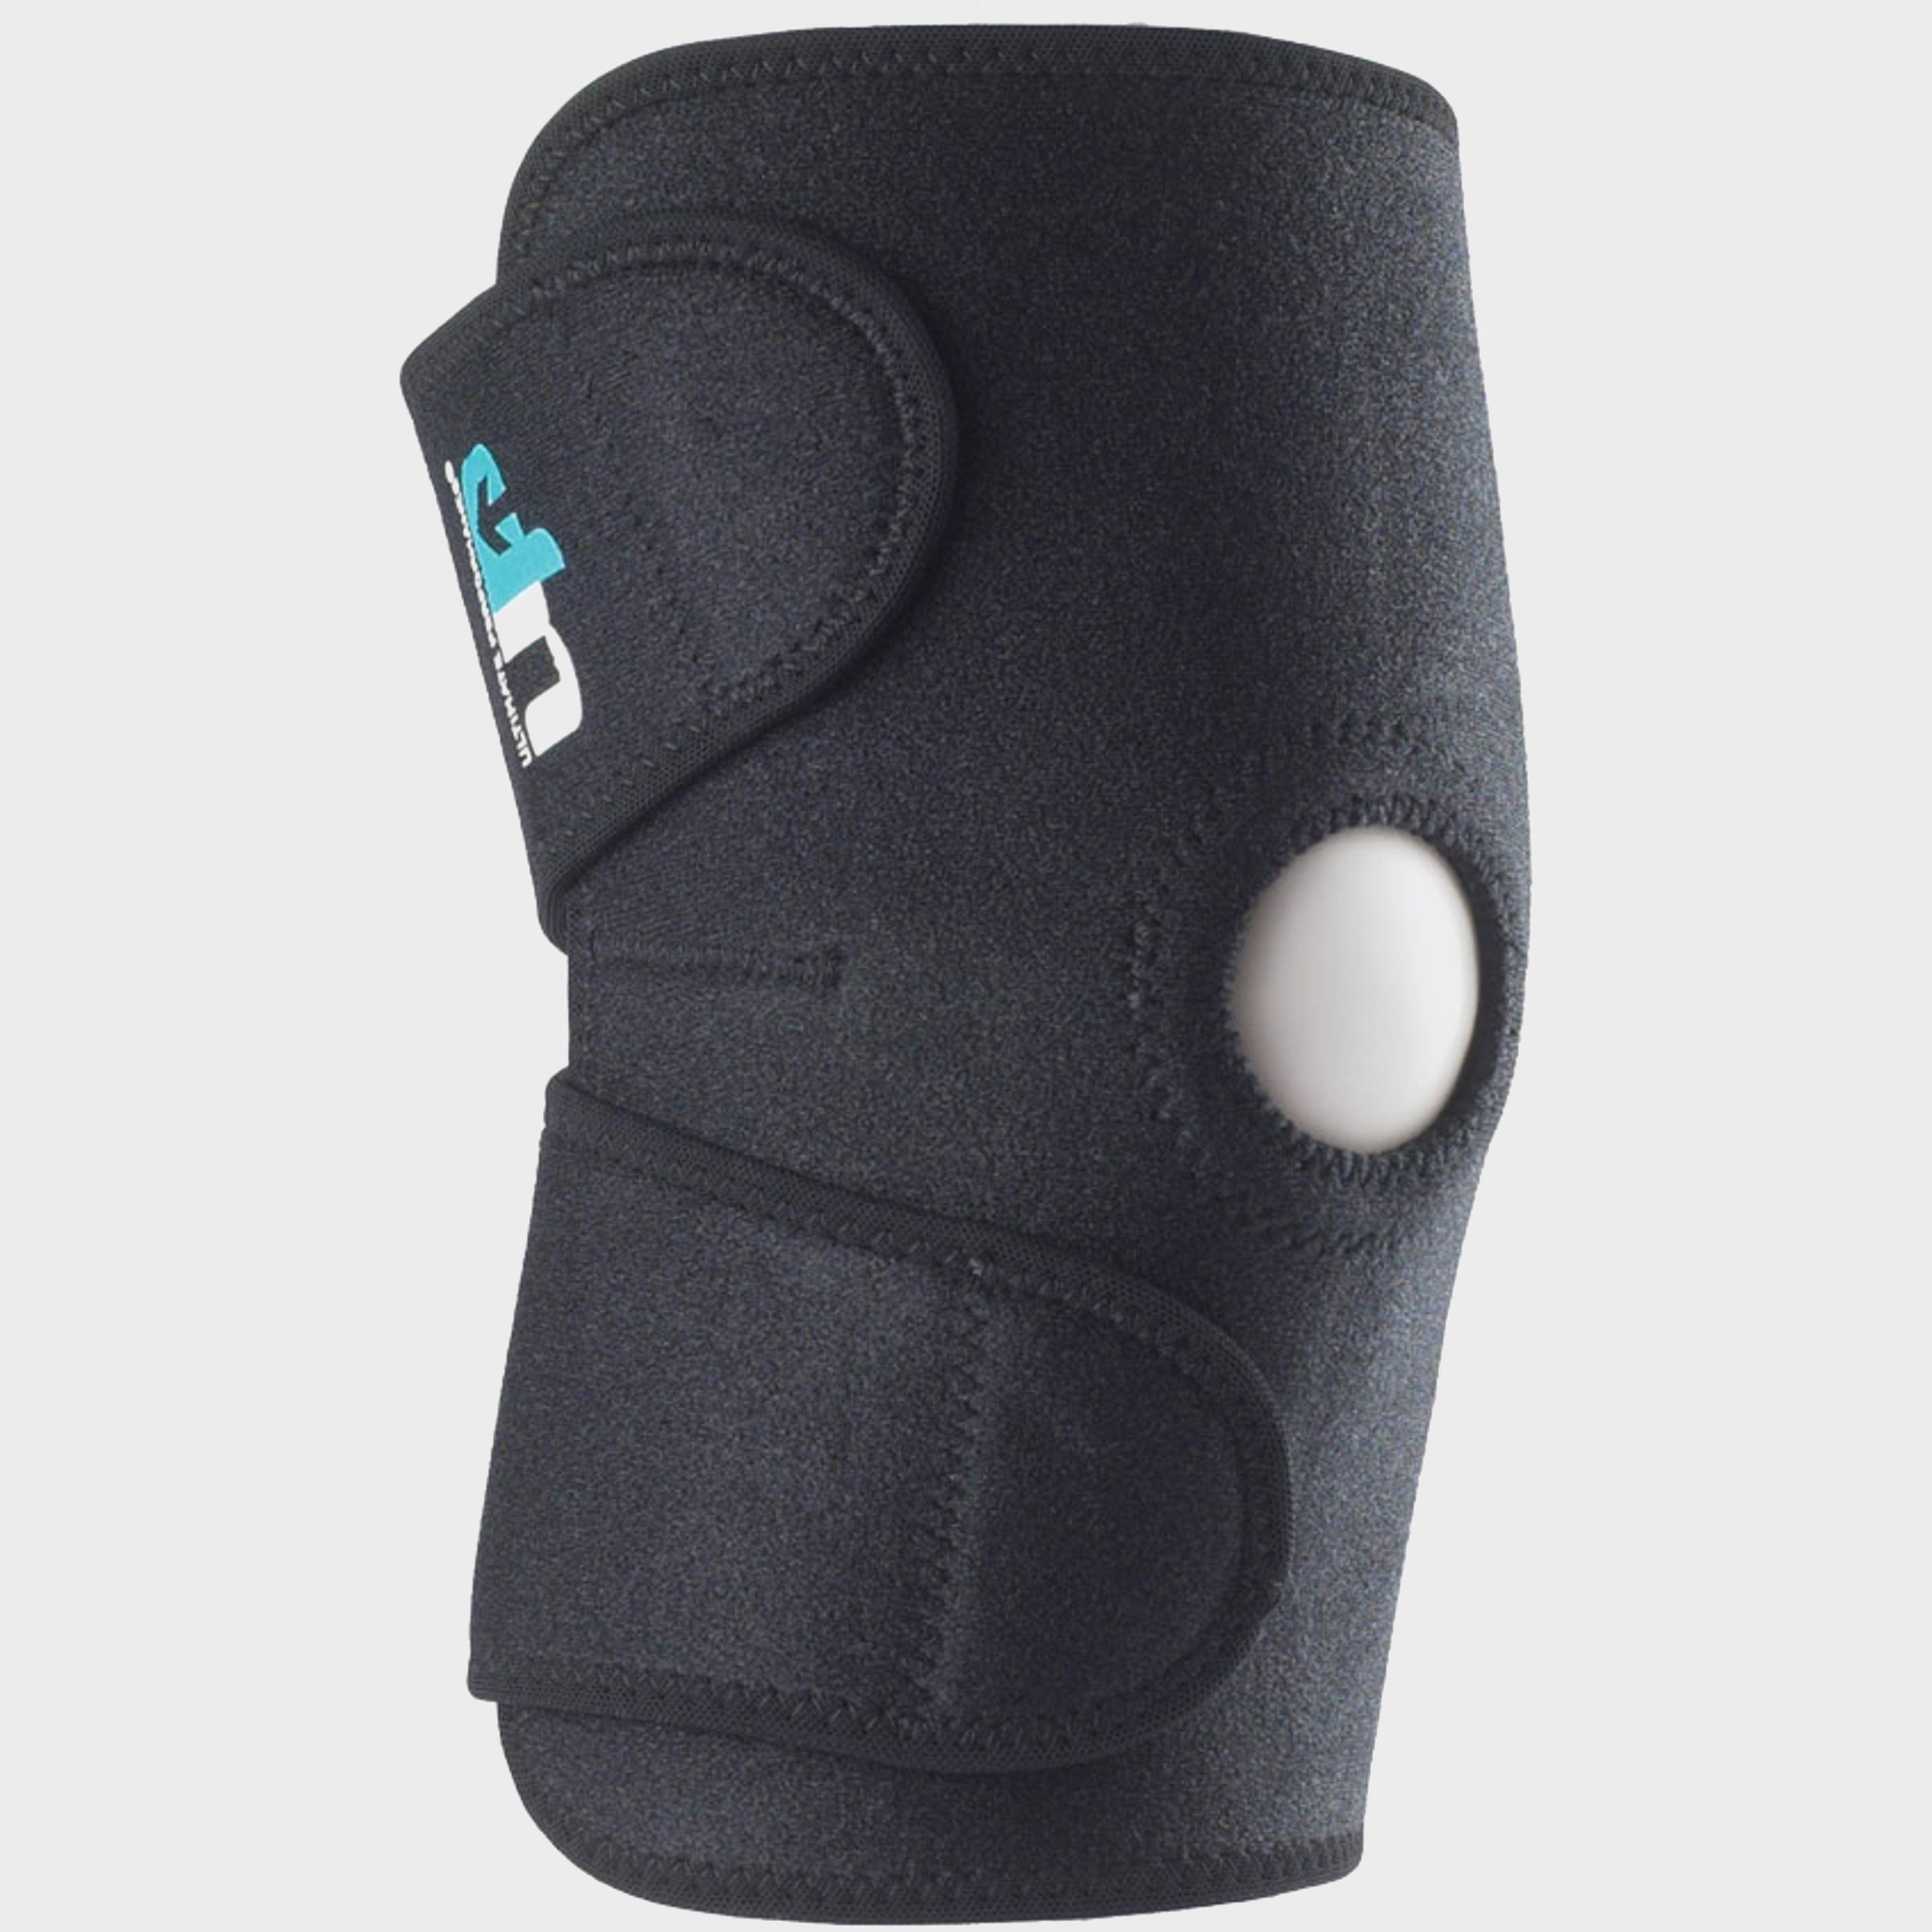 Image of Ultimate Perfor Ultimate Knee - Black/Support, Black/SUPPORT